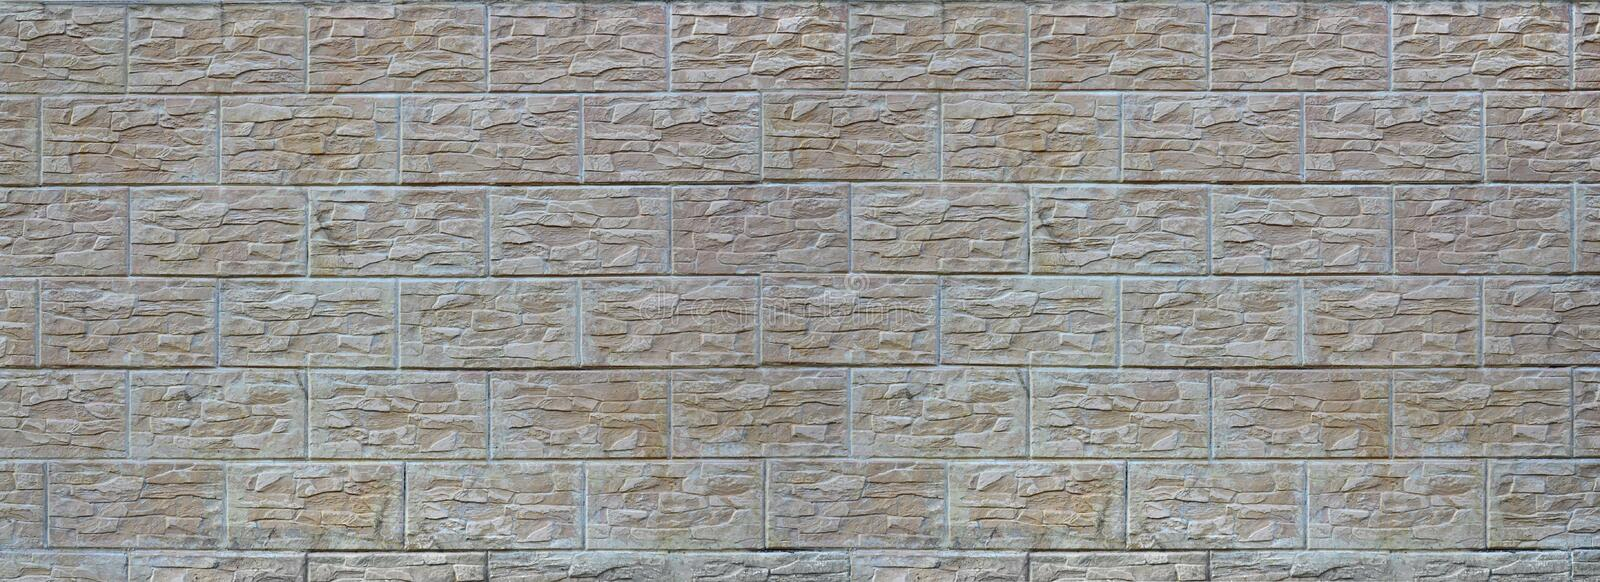 Wall of light texture tiles, stylized in appearance as a brick. One of the types of wall decoratio royalty free stock images